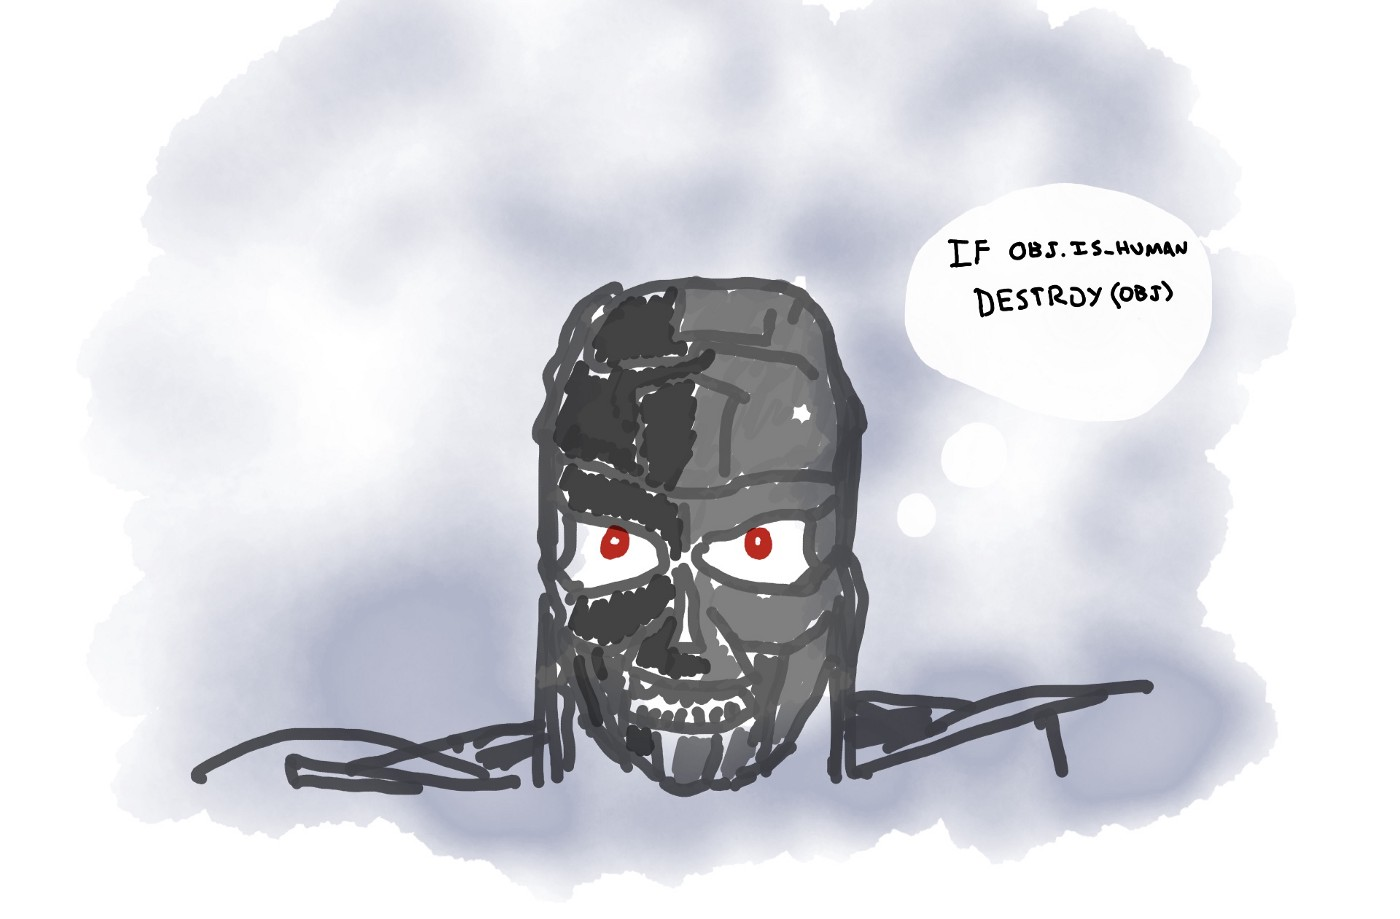 "An illustration of a Terminator robot with a thought bubble that says ""IF OBJ.IS_HUMAN DESTROY OBJ"